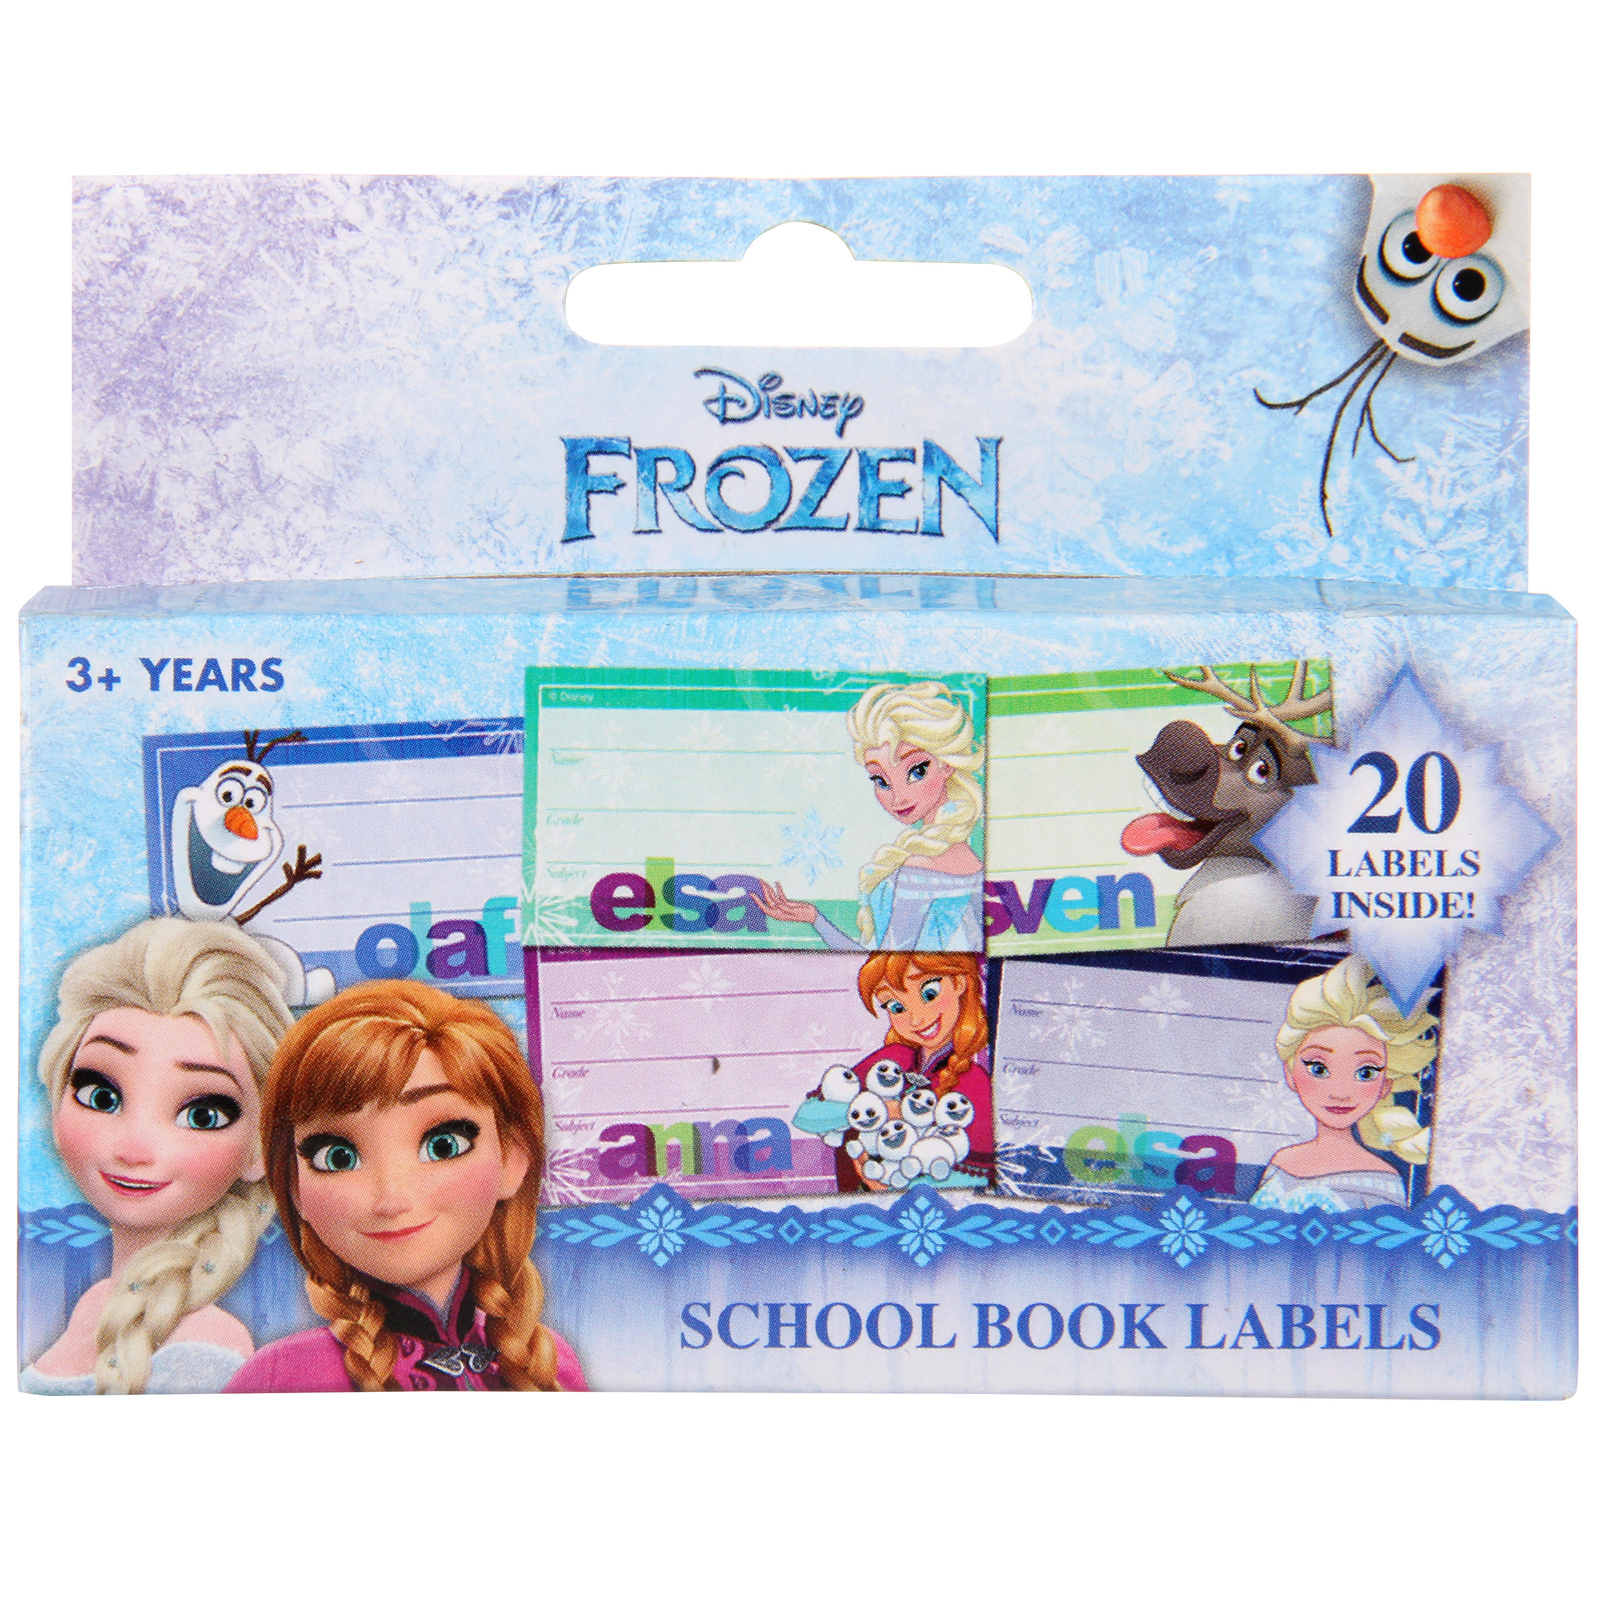 Frozen School Book Labels image